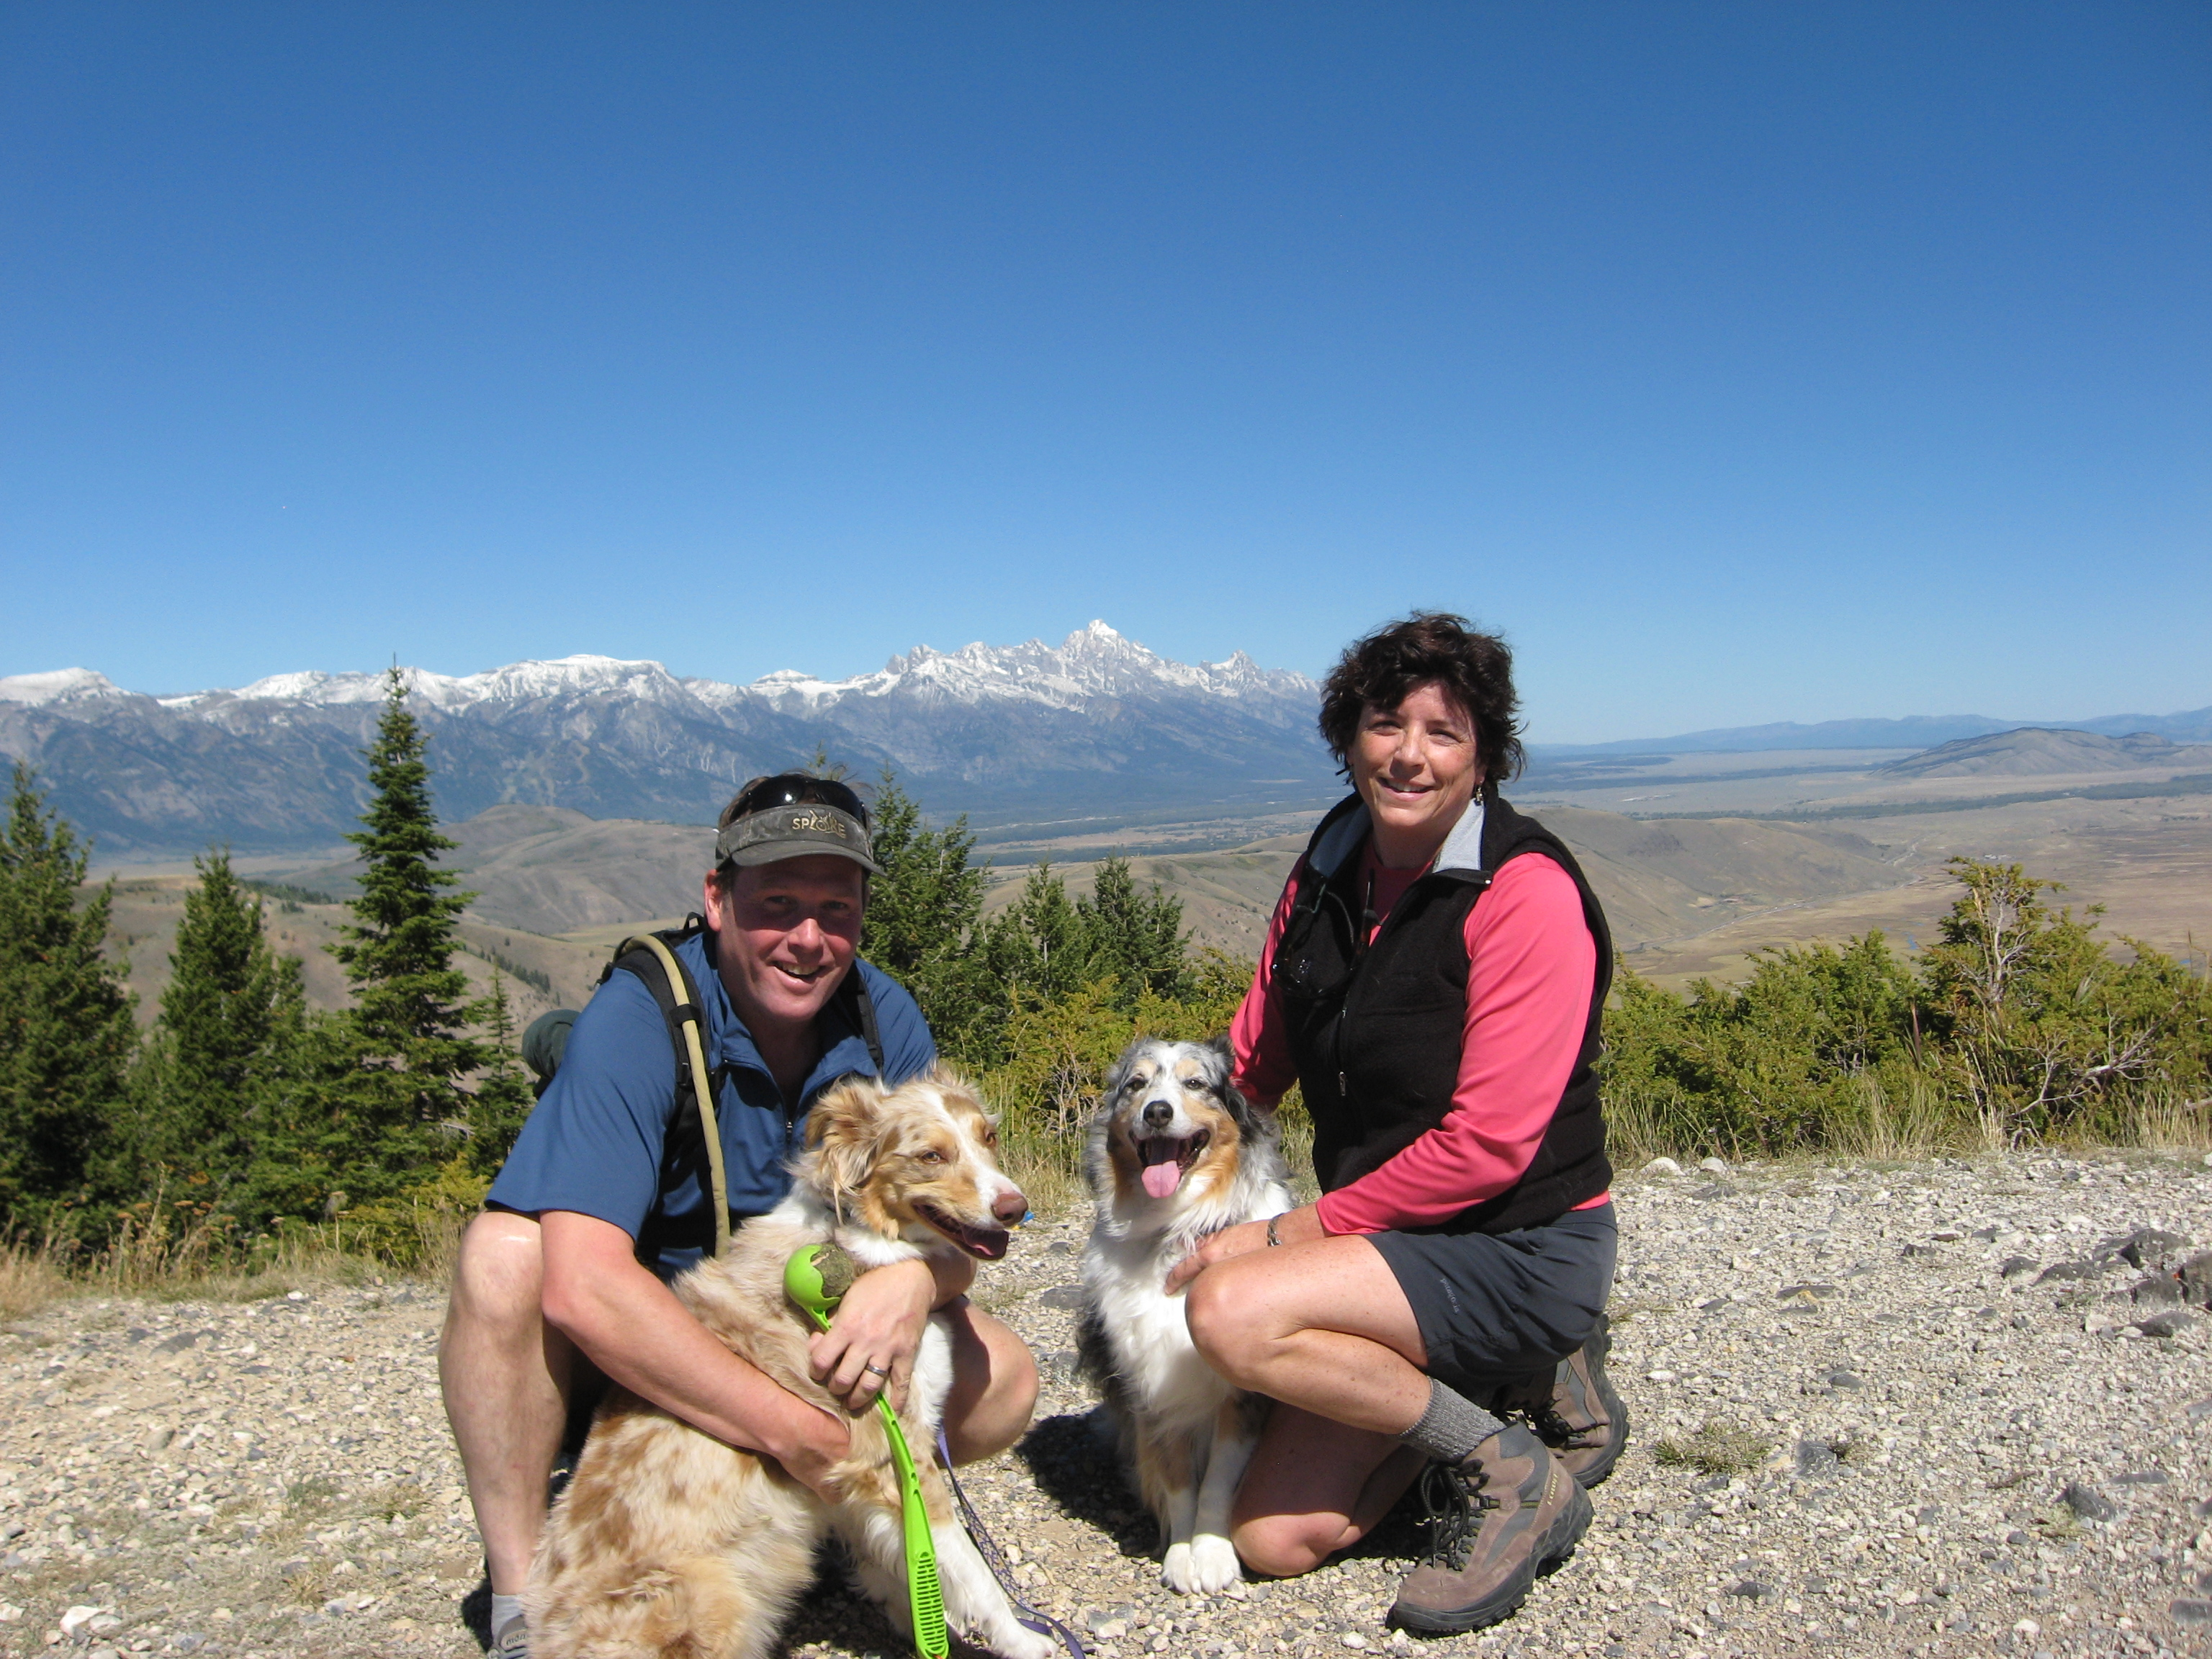 Paul_with_wife_Kathy_and_Dogs_near_home_in_Jackson_Hole.JPG